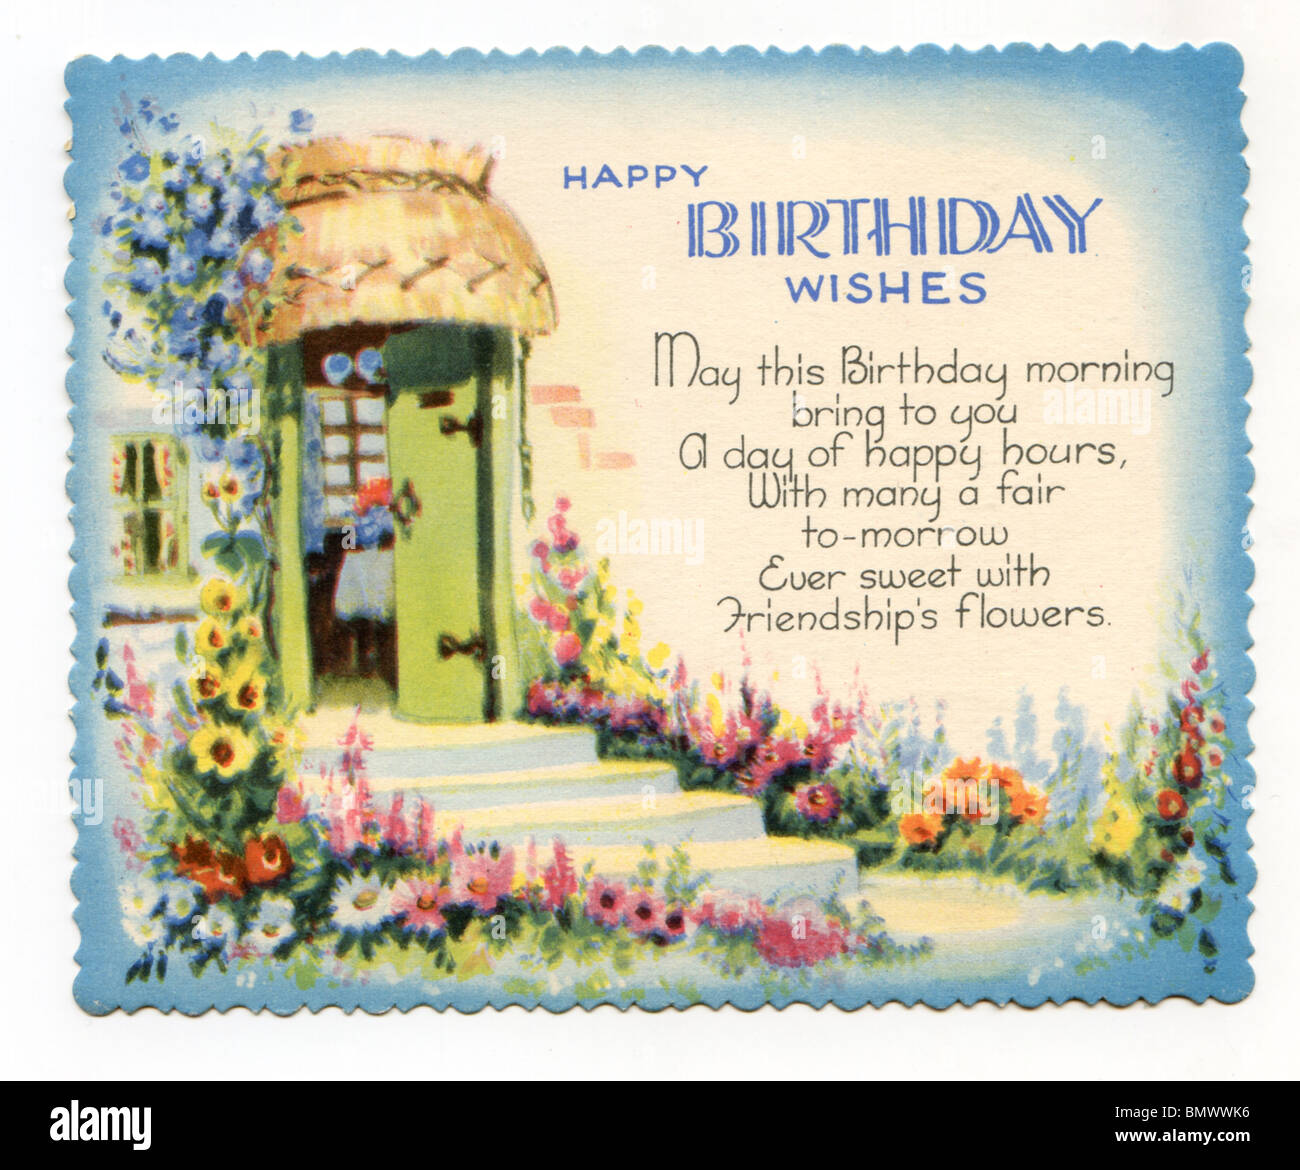 Search Results For Birthday Card Country Cottage Garden Stock Photos And Images